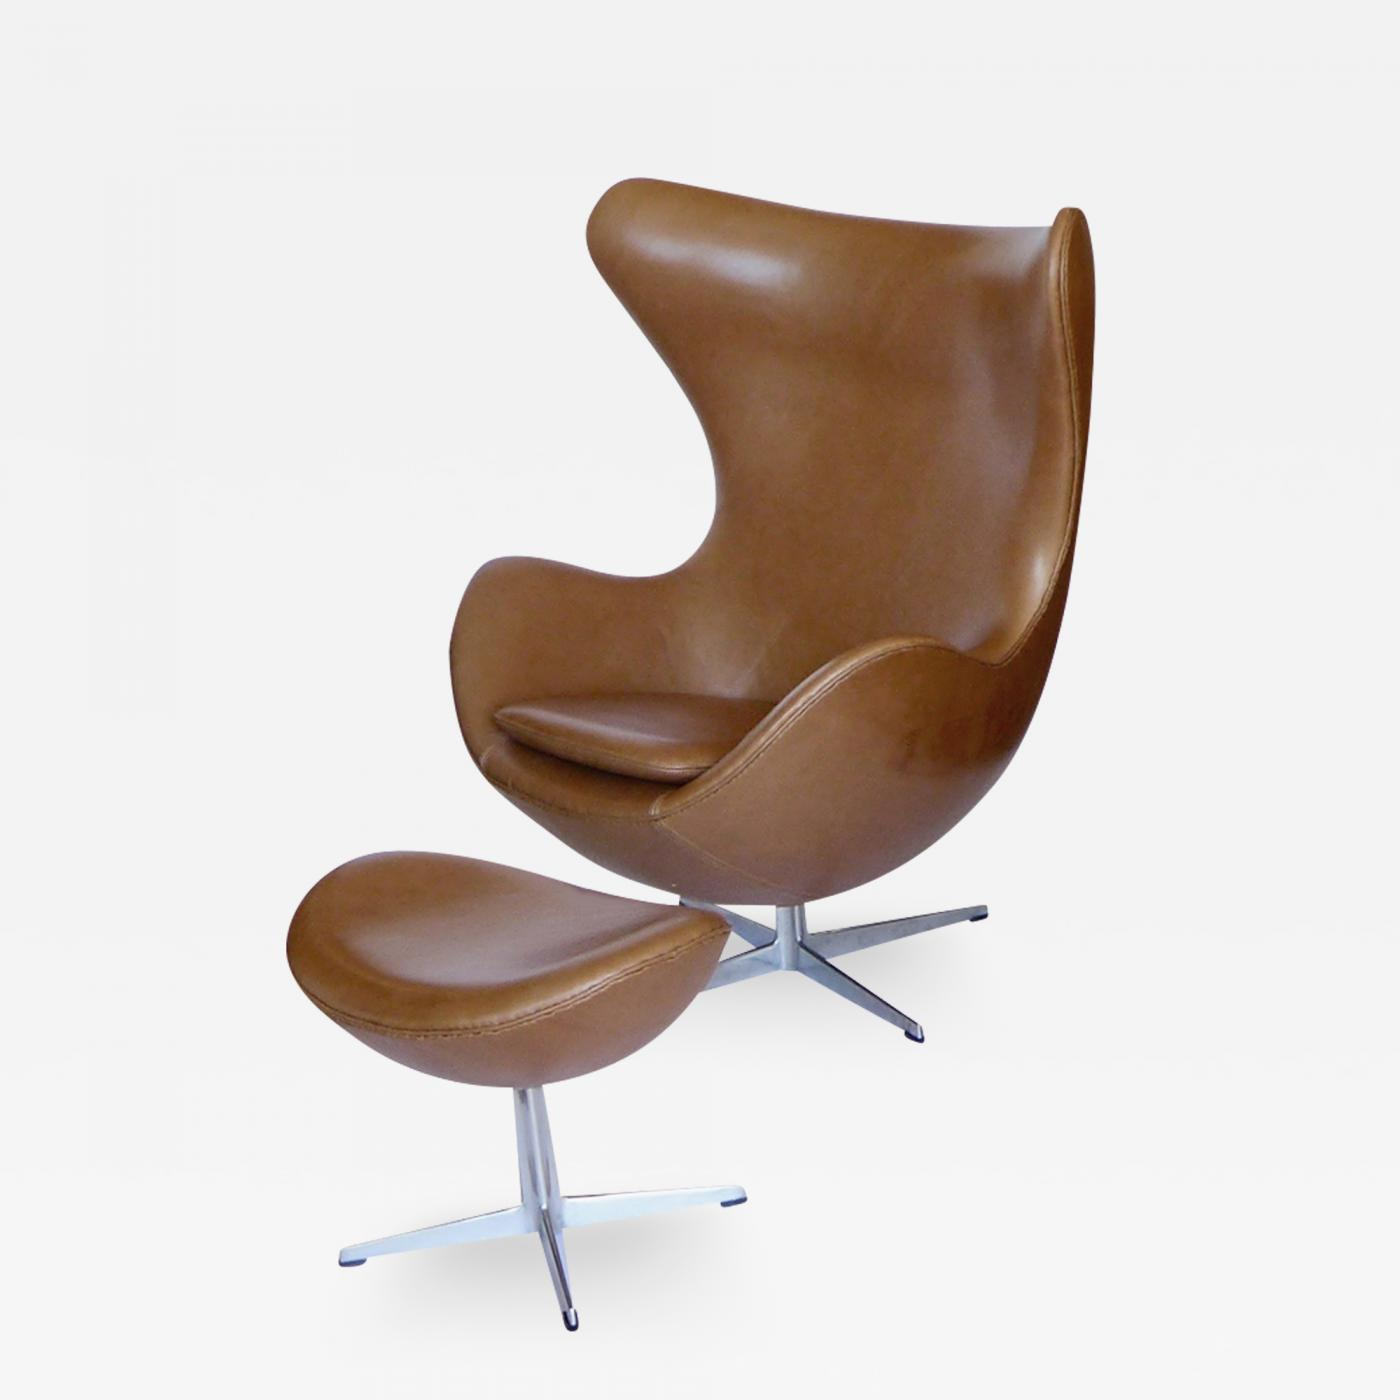 Pouf Design Egg Pouf Jacobsen : Arne jacobsen original tan leather egg chair and ottoman